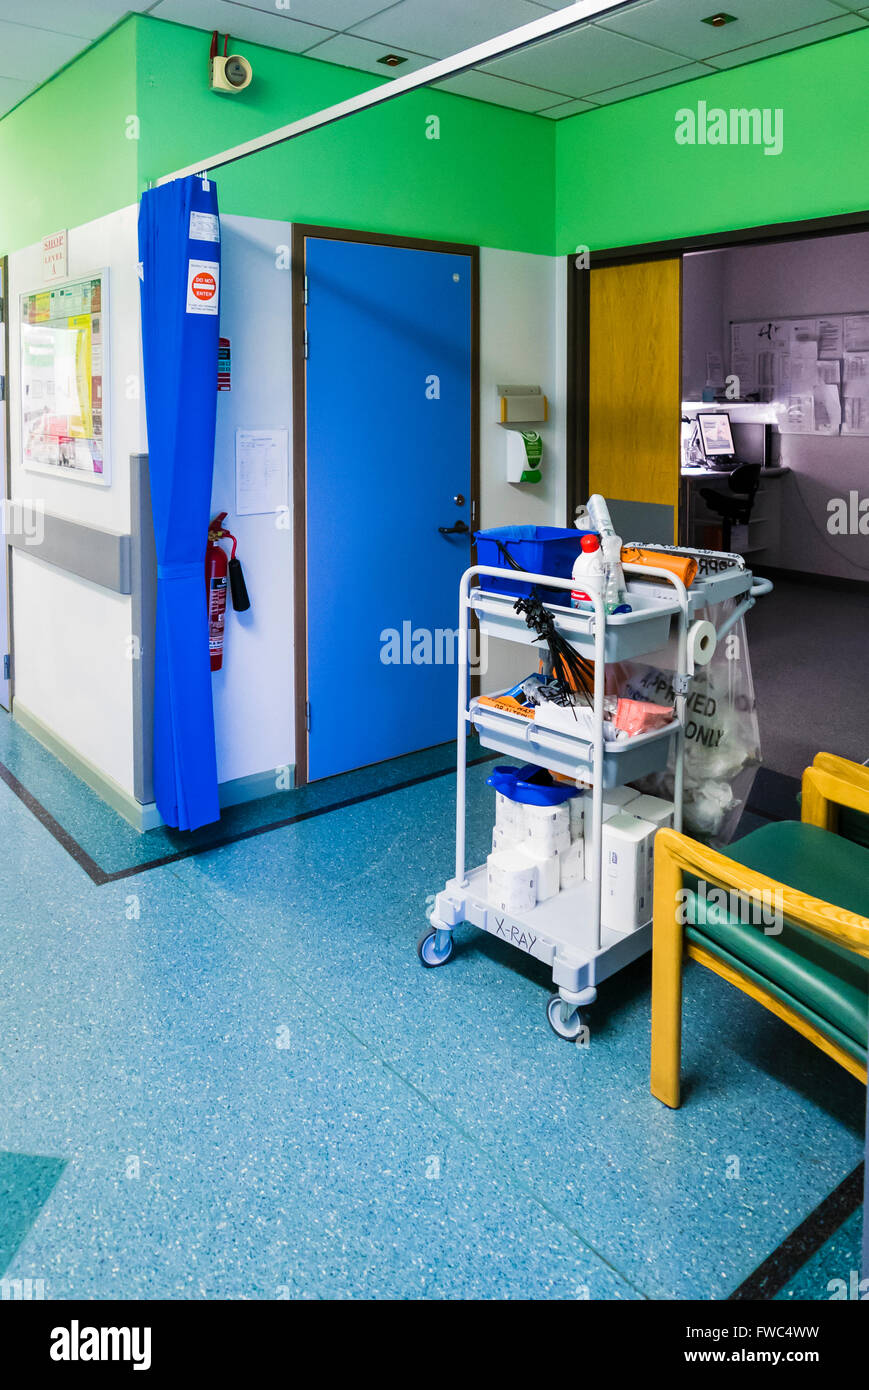 Cleaner's trolley outside a clinical investigation room of a hospital. - Stock Image